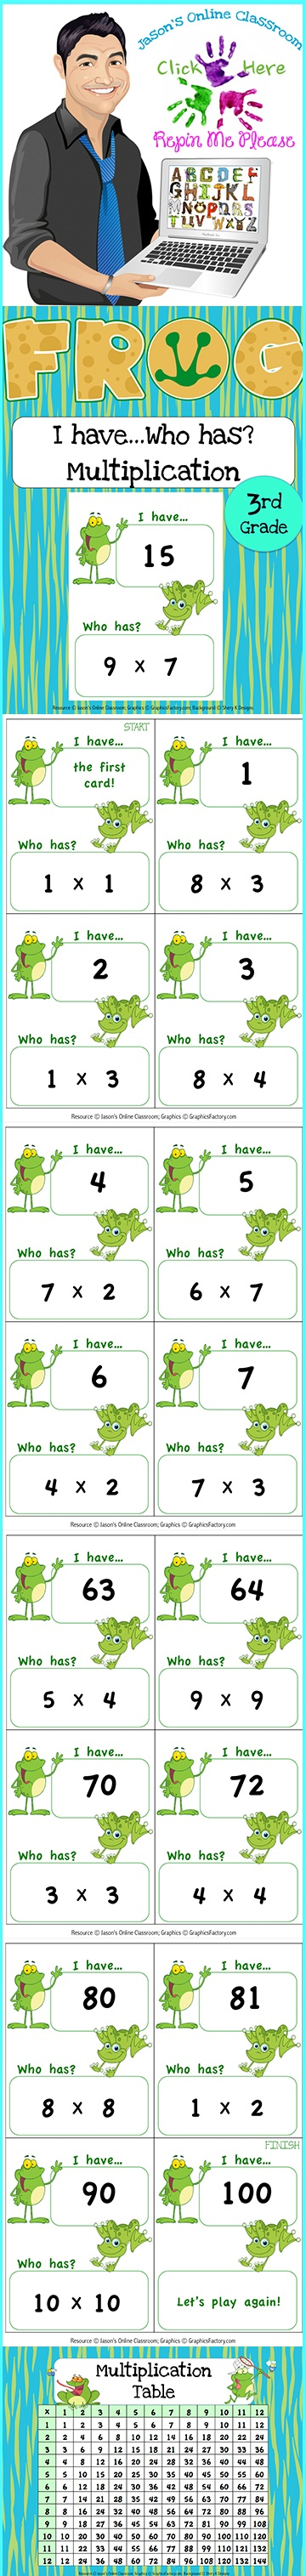 $3 Common Core Aligned I have... Who has? Multiplication Game to help students learn how multiply within 100. Includes answer key and 43 game cards! Click the link below for more info about the images used to make this resource (Images © Graphics Factory) http://jasonsonlineclassroom.com./graphics-factory/